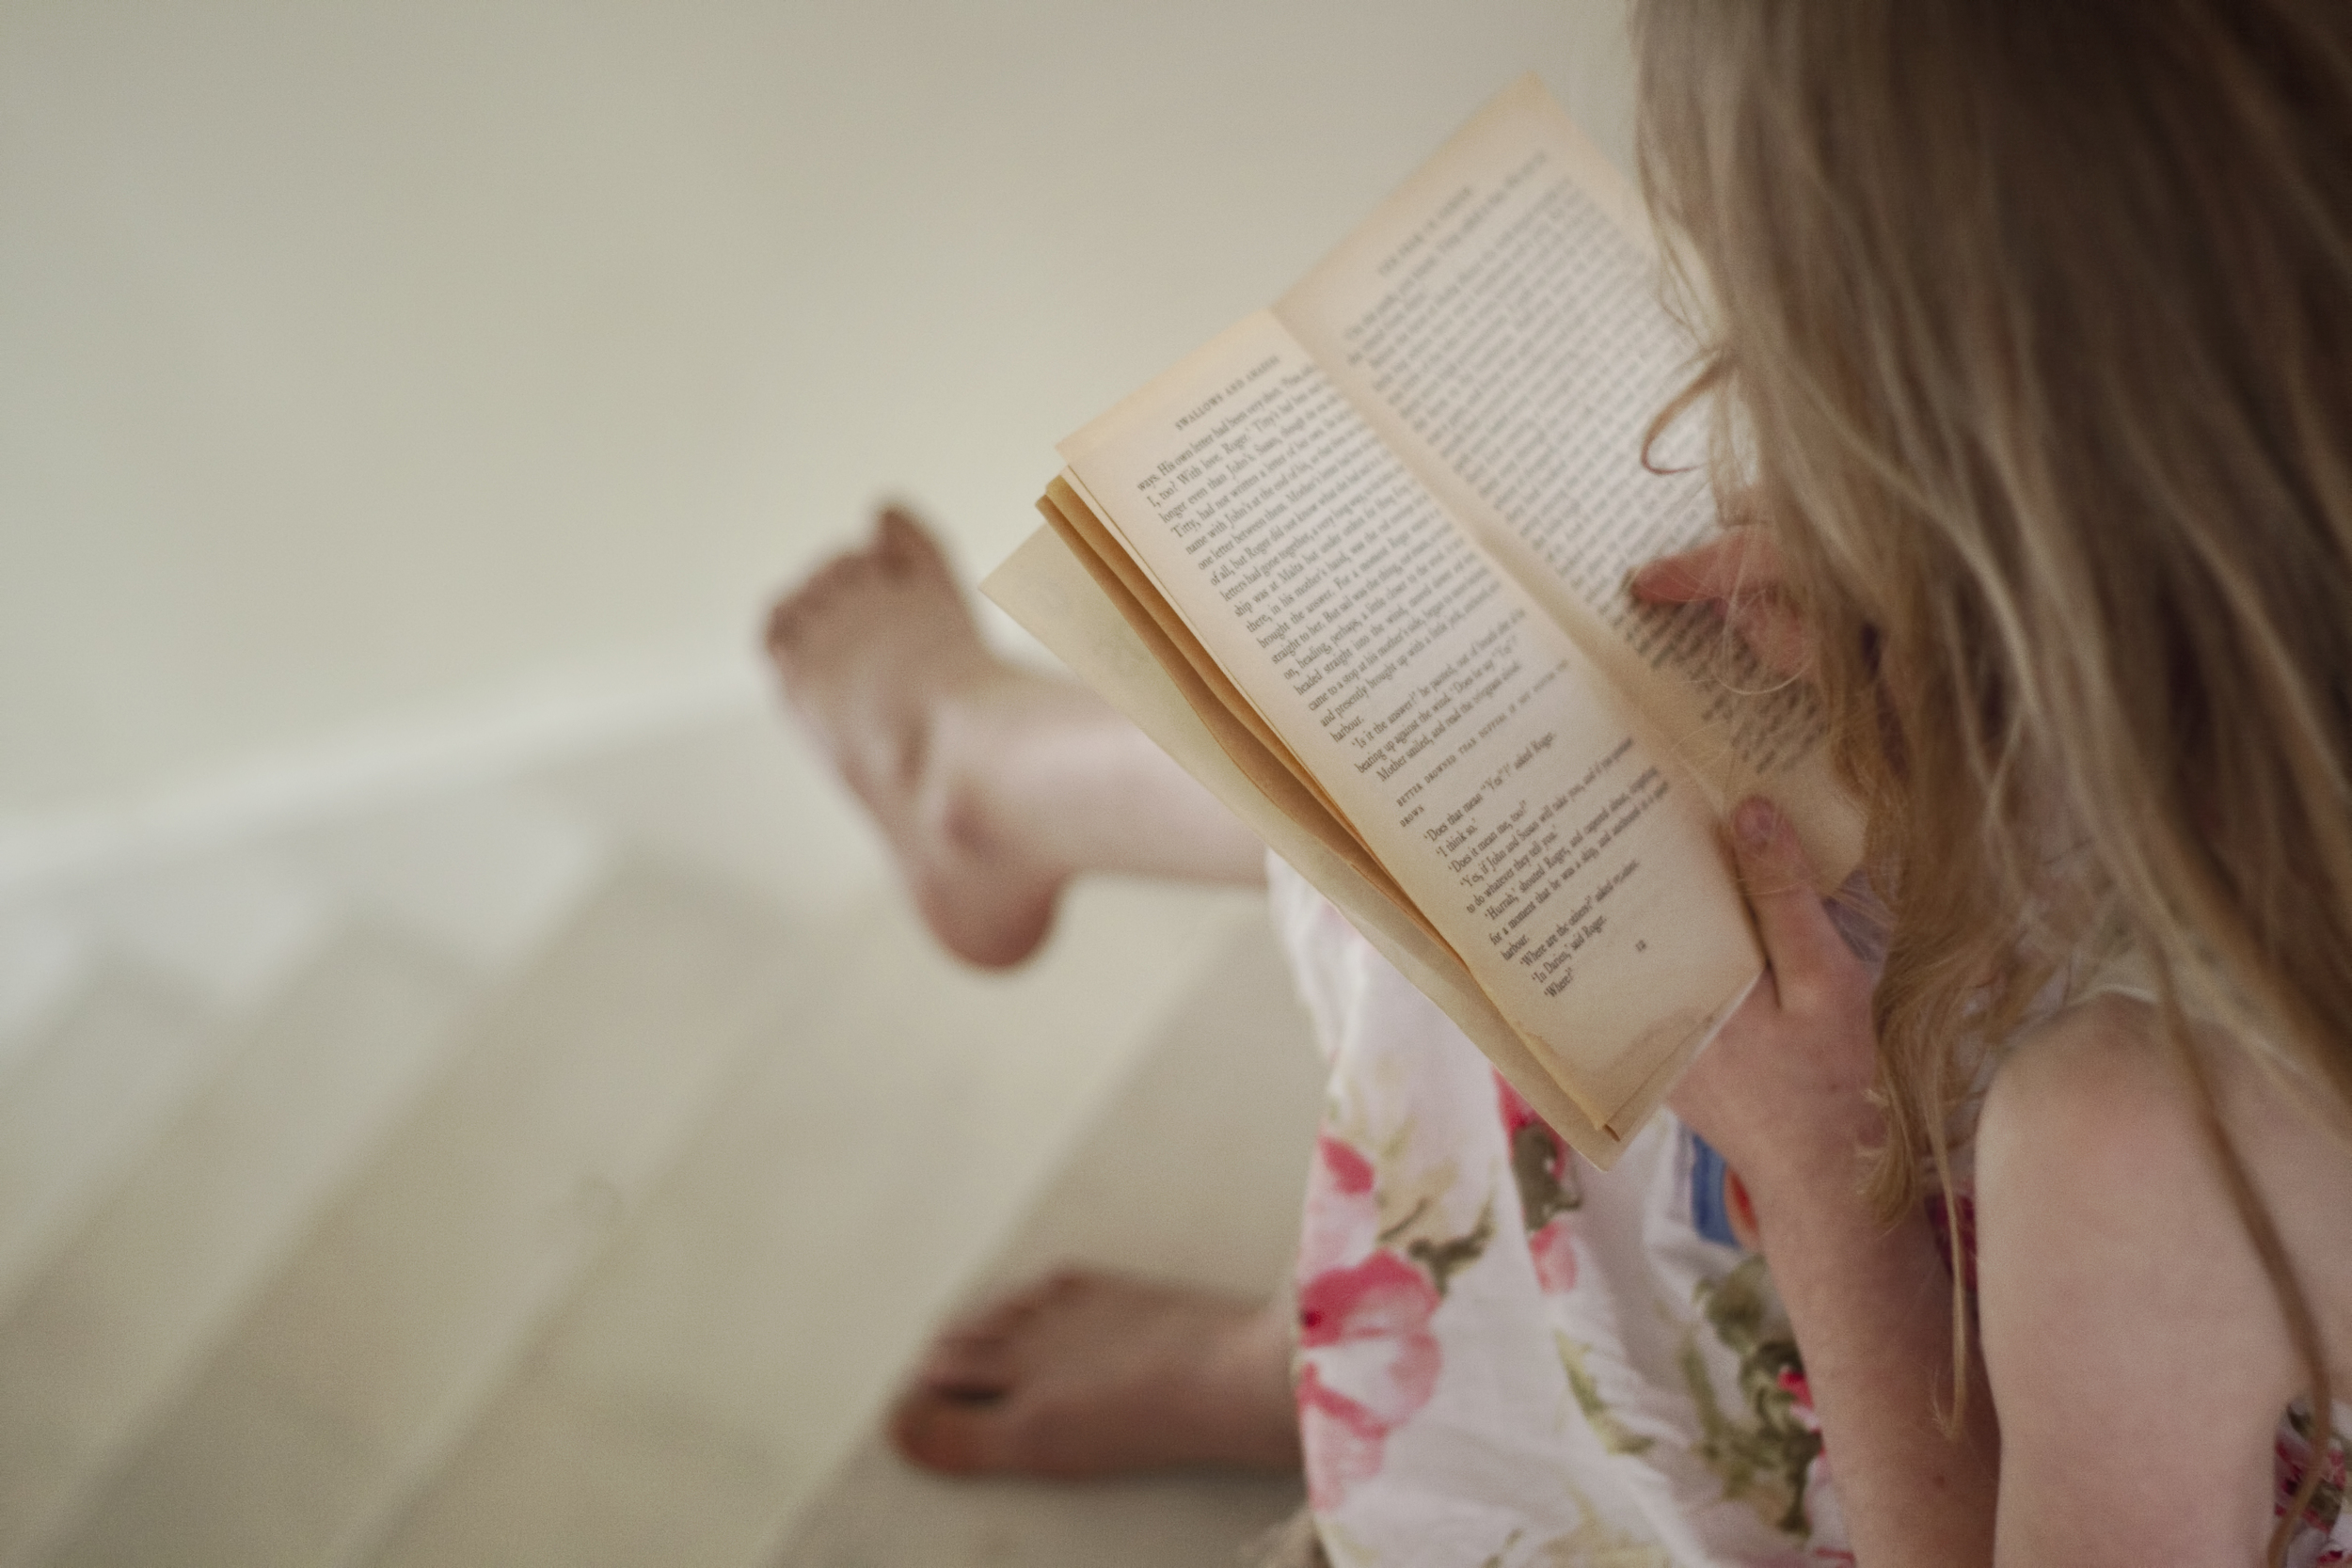 Many children learn to read, write and speak in a second language as part of their early development.  Sarah Horrigan/Flickr  (CC BY-NC 2.0)